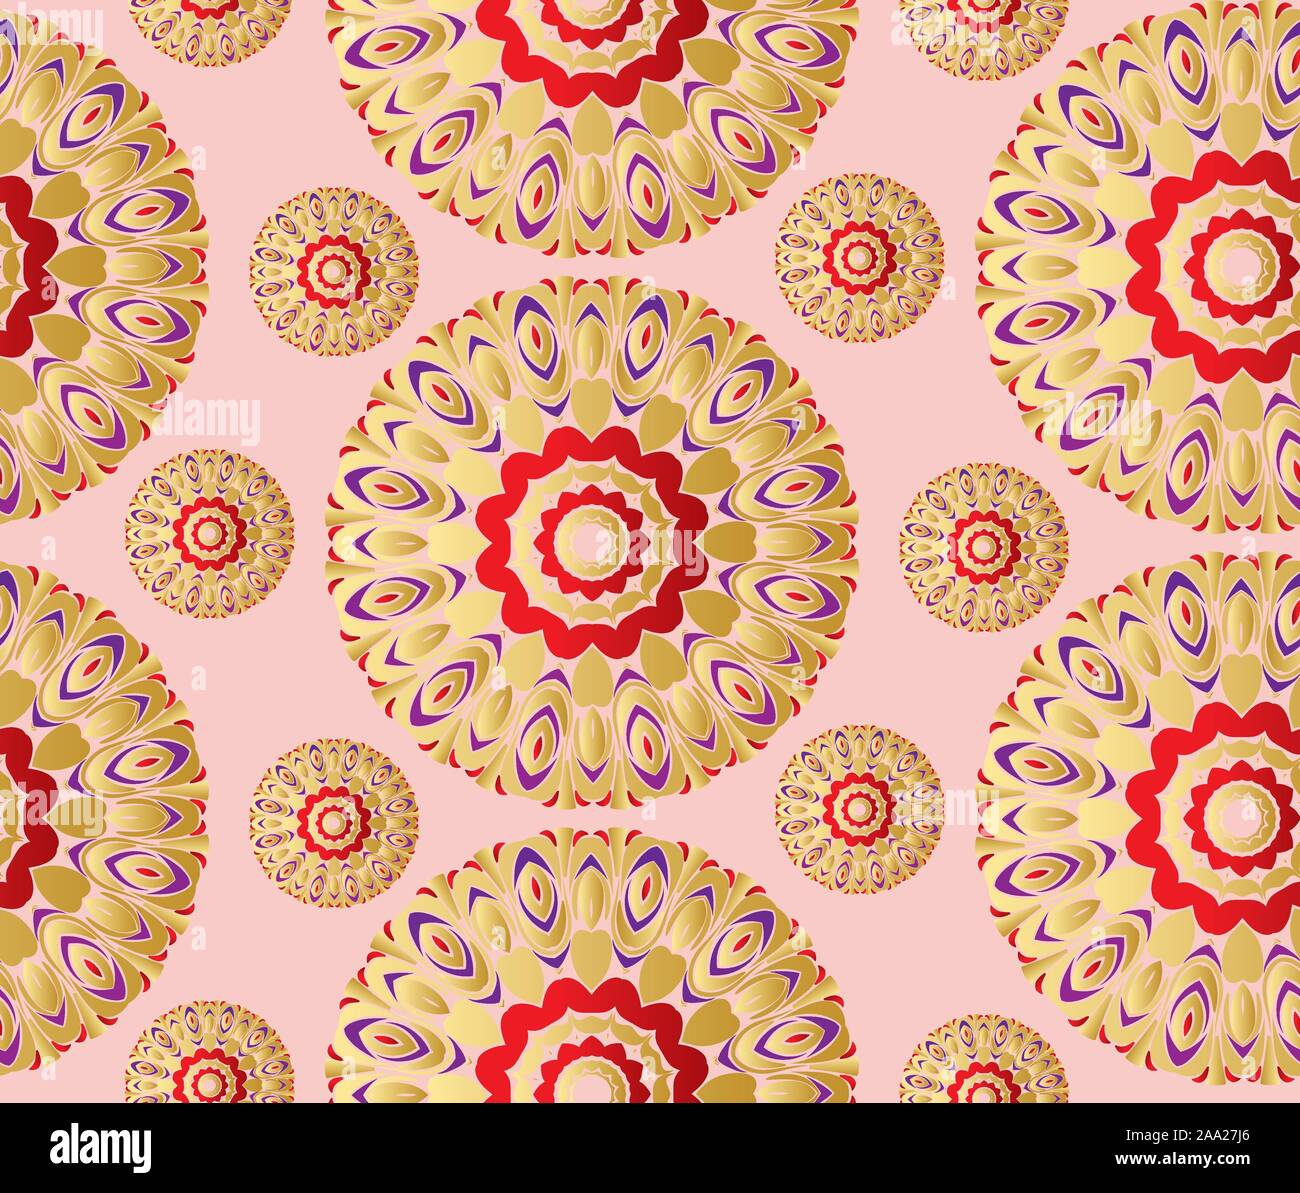 Vintage Decorative Golden Floral Patterns Design Background Stock